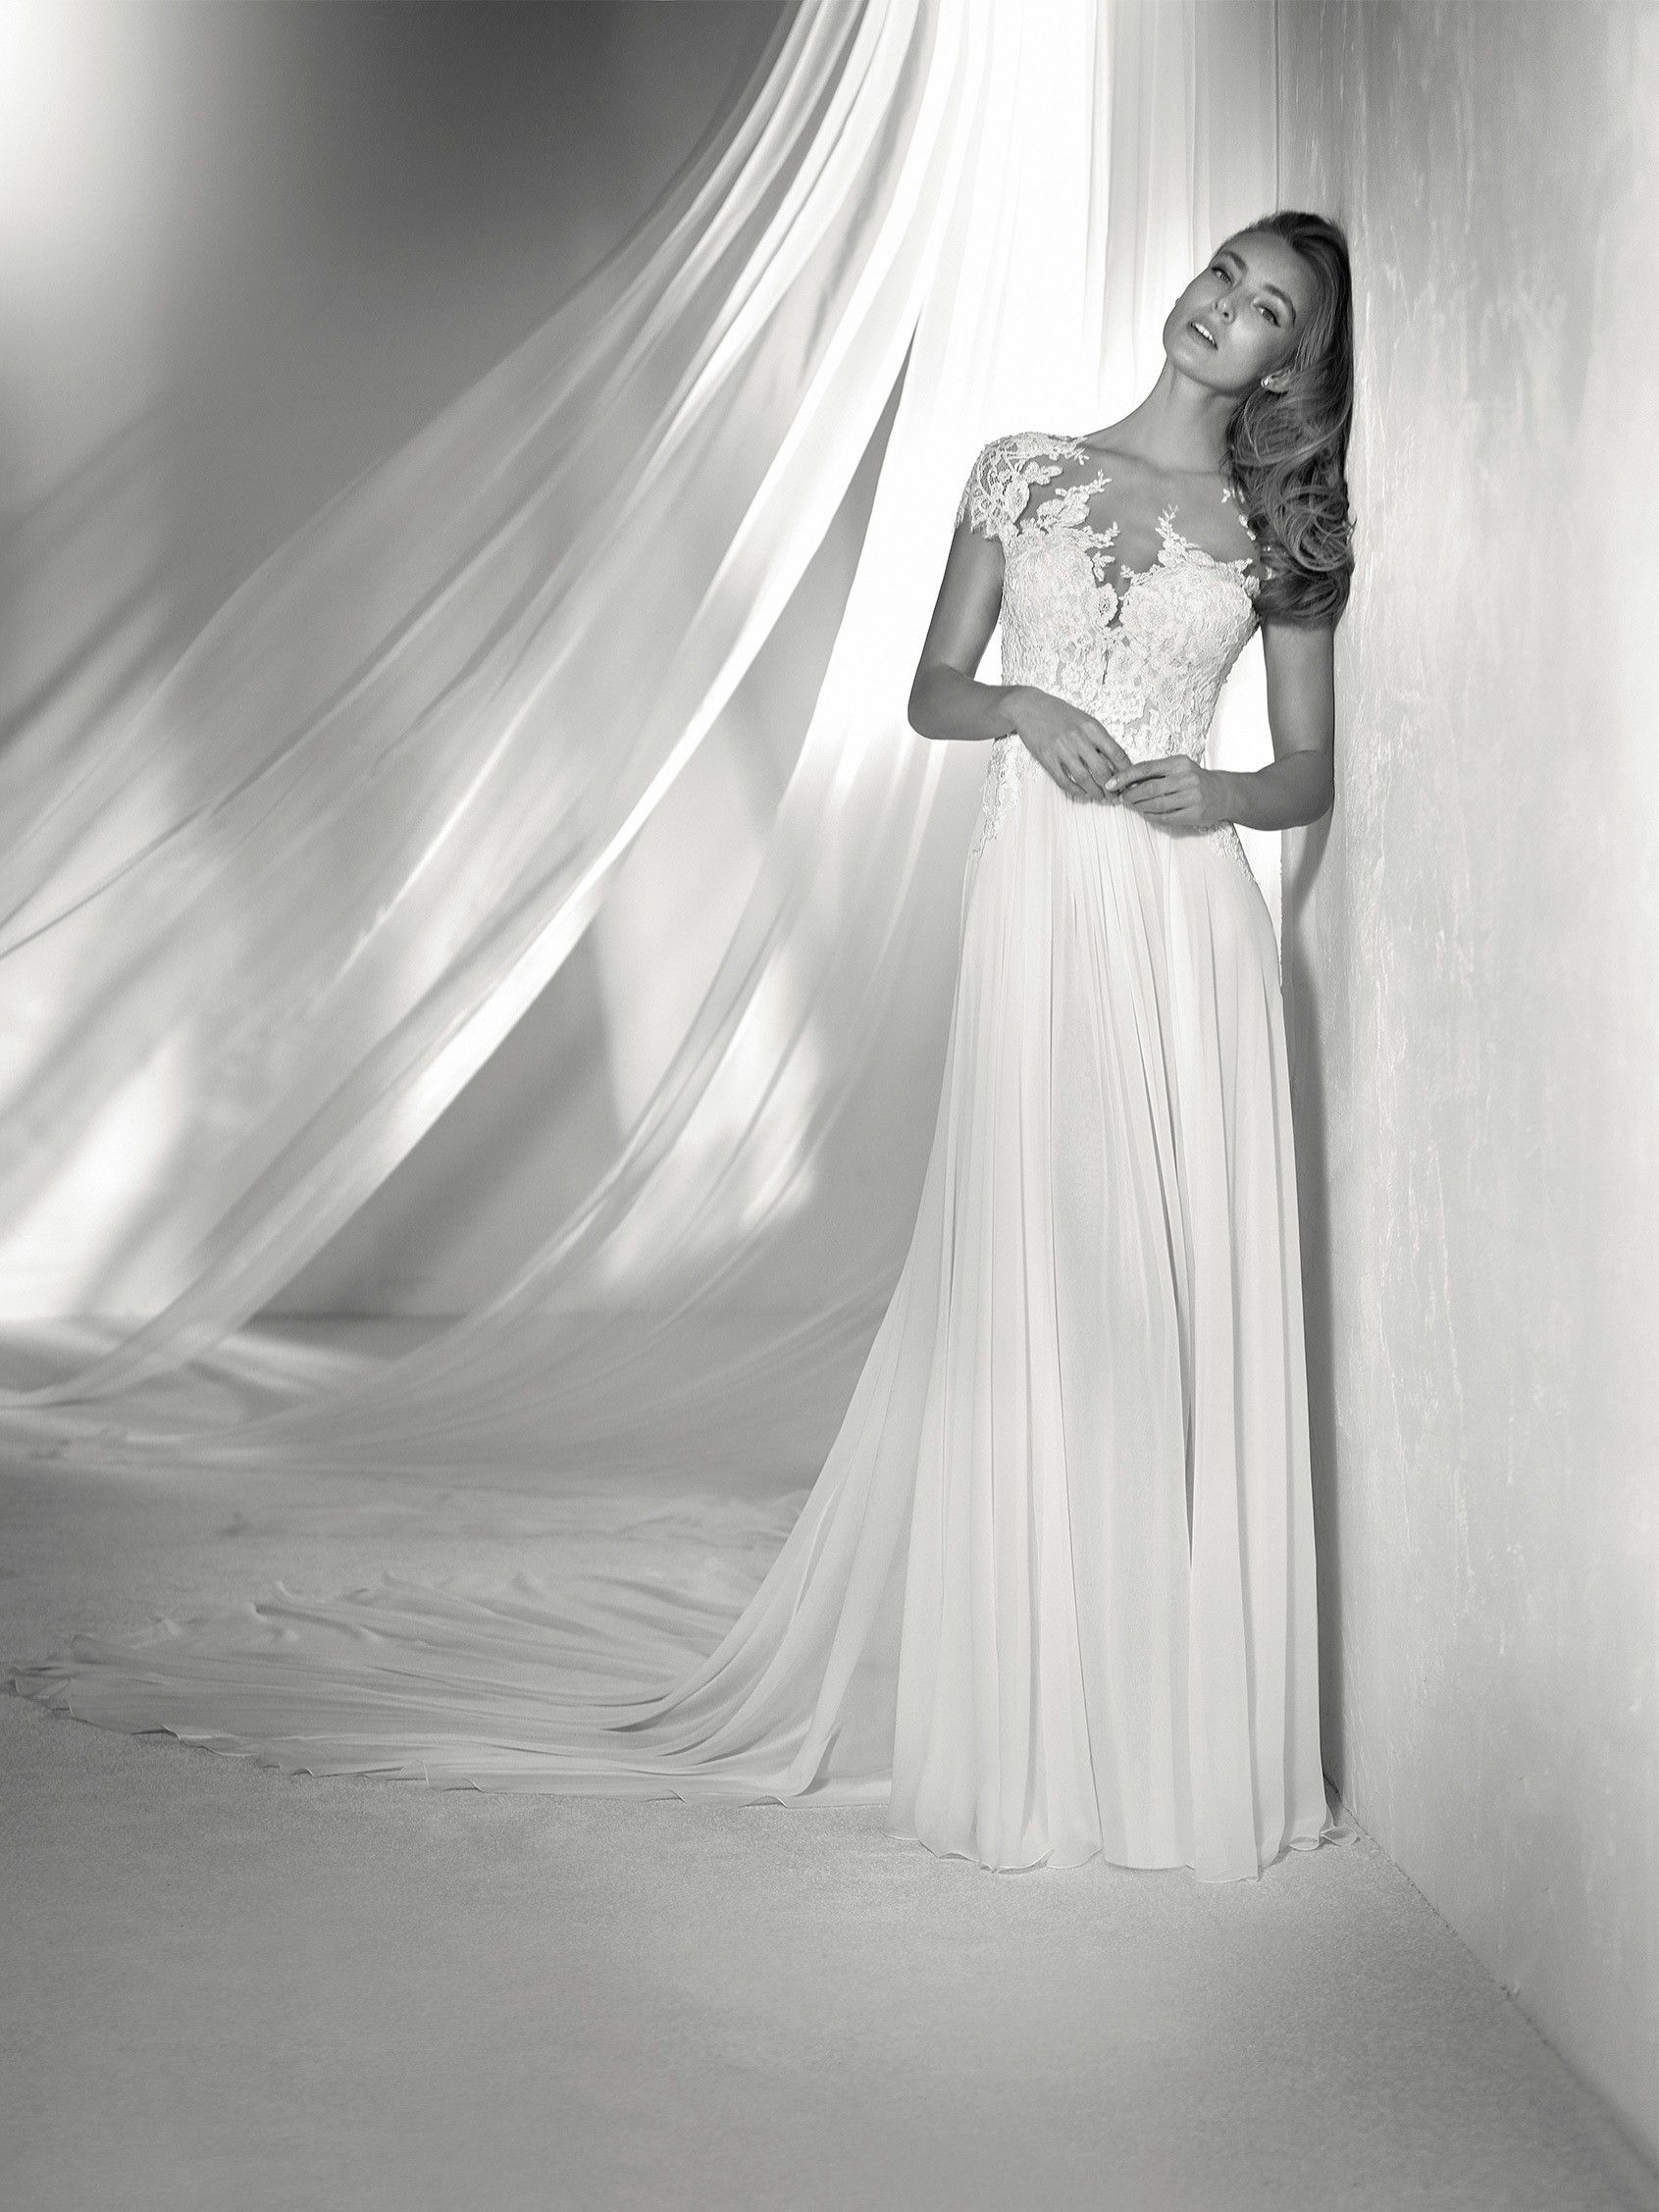 REGINA: Lovely wedding dress with a chiffon and tulle skirt ...